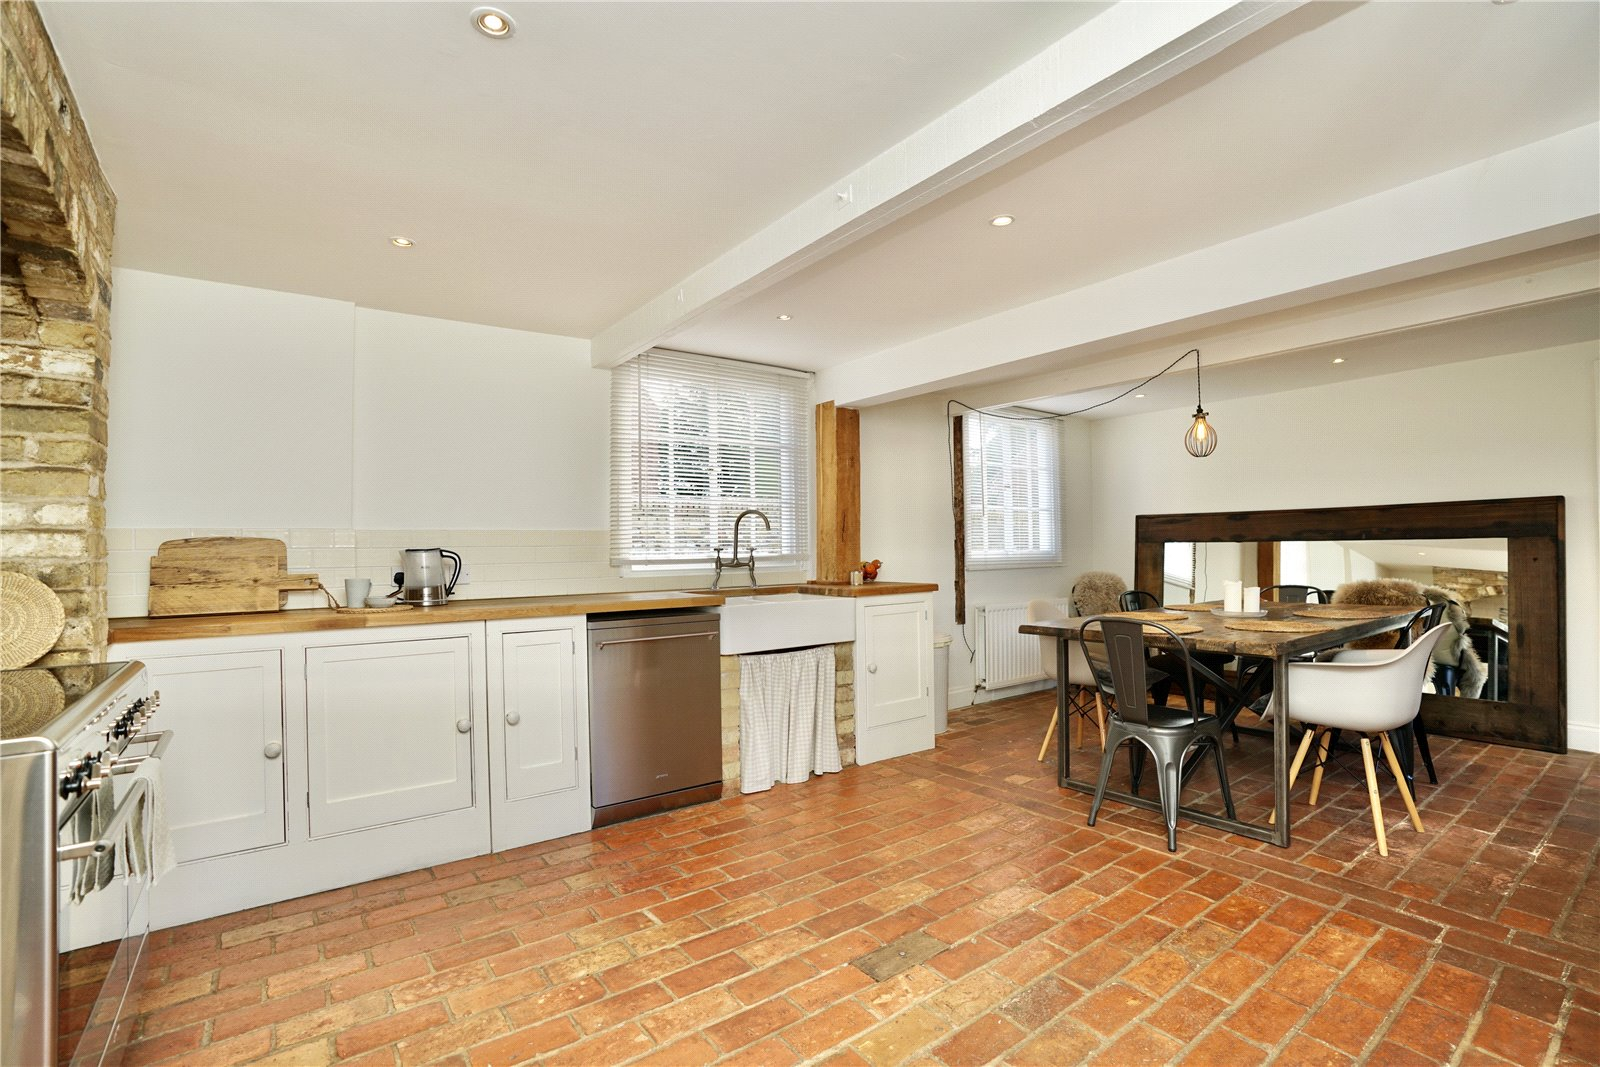 4 bed house for sale in Buckden  - Property Image 9